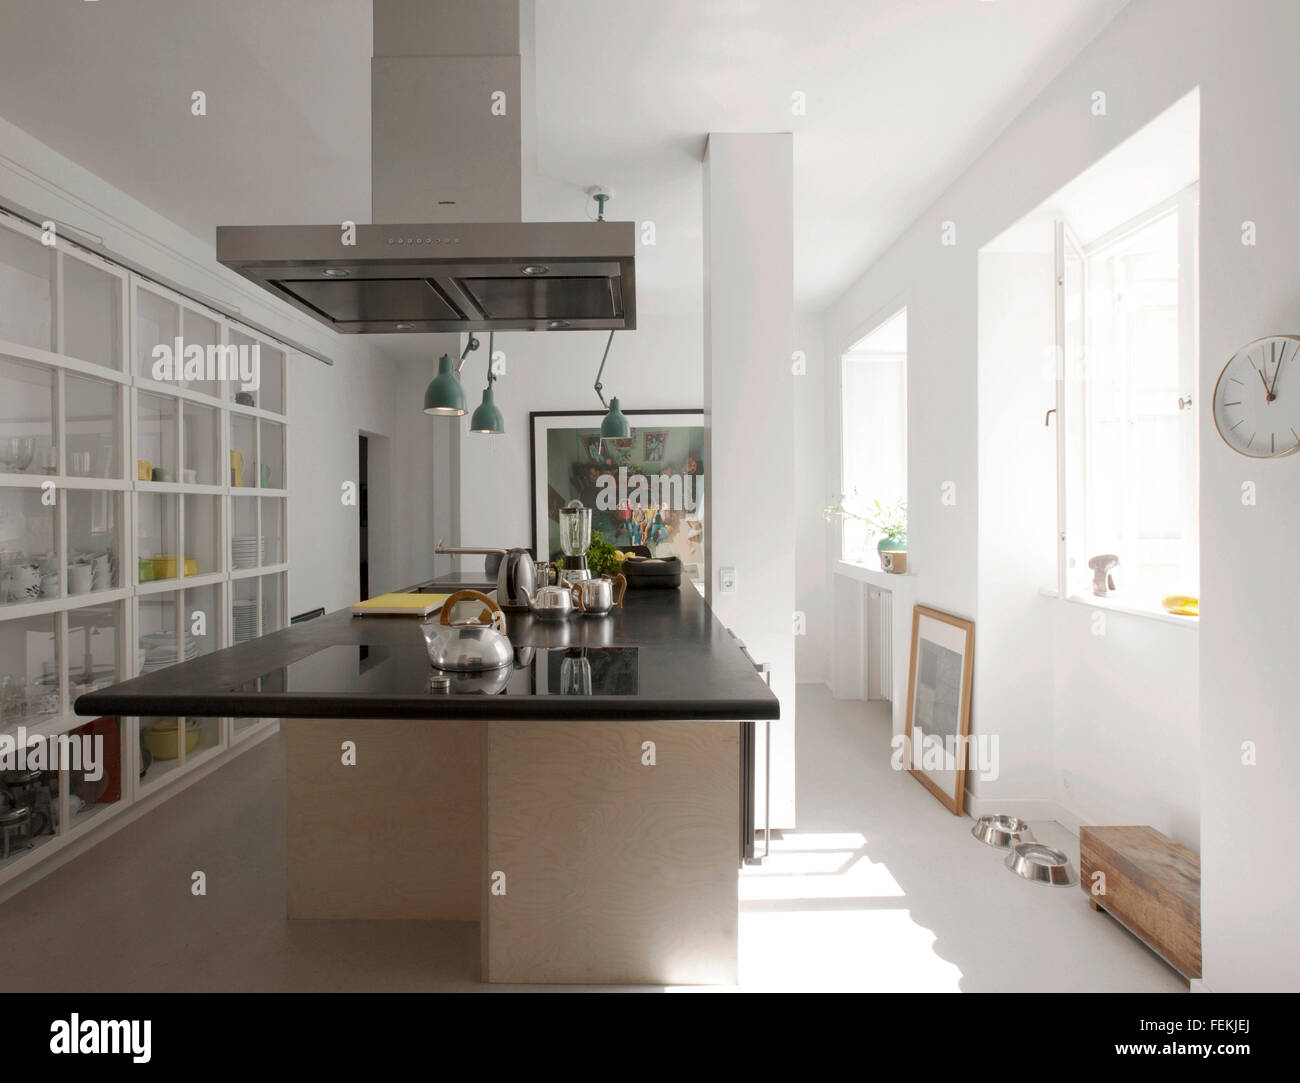 Modernism in the 'Cake House'. The kitchen area. - Stock Image